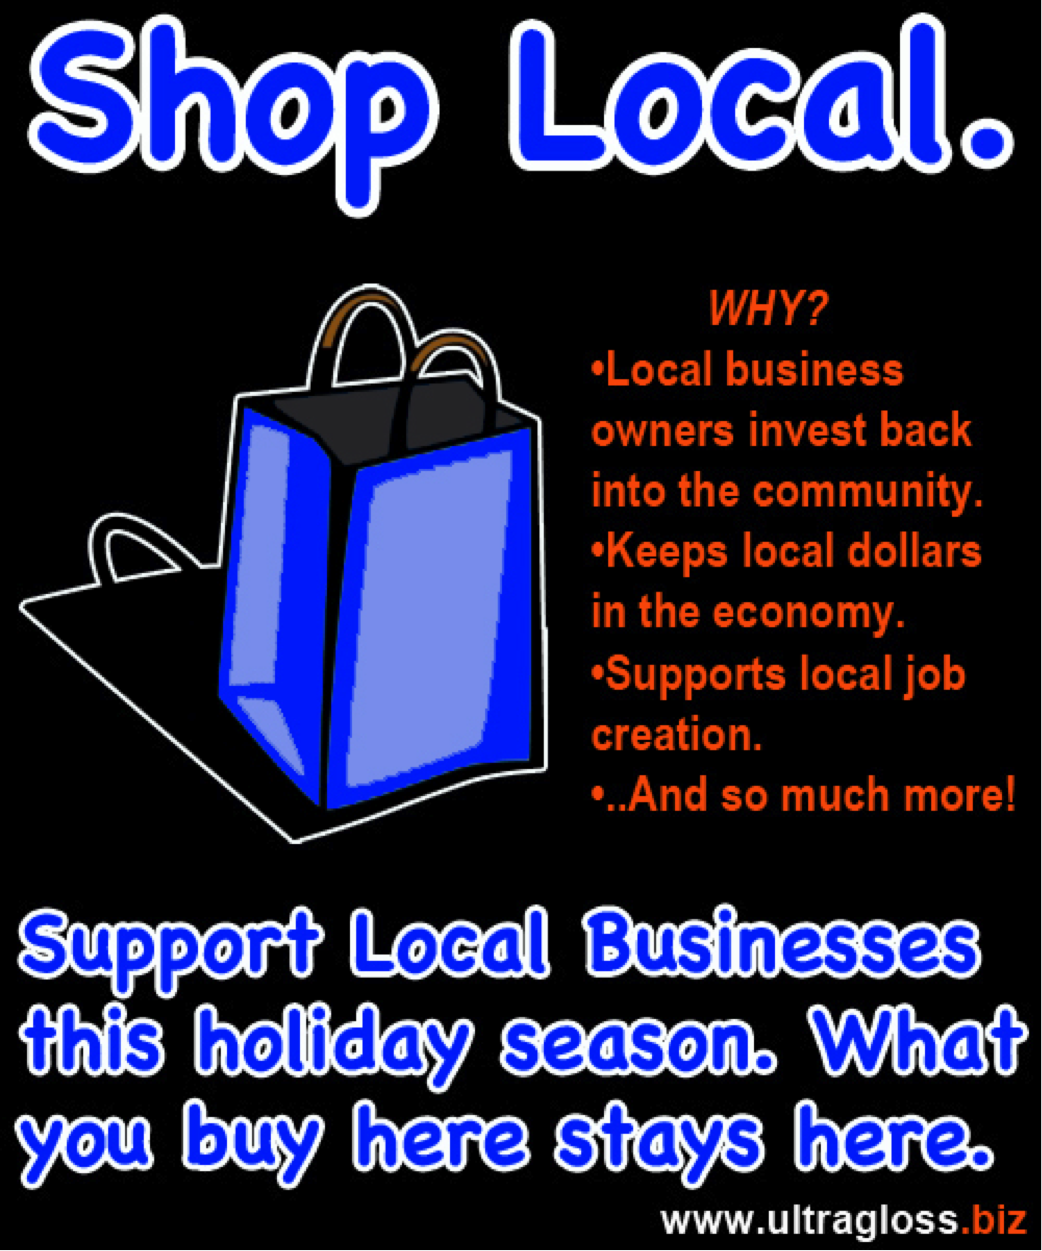 Shop Local This Year